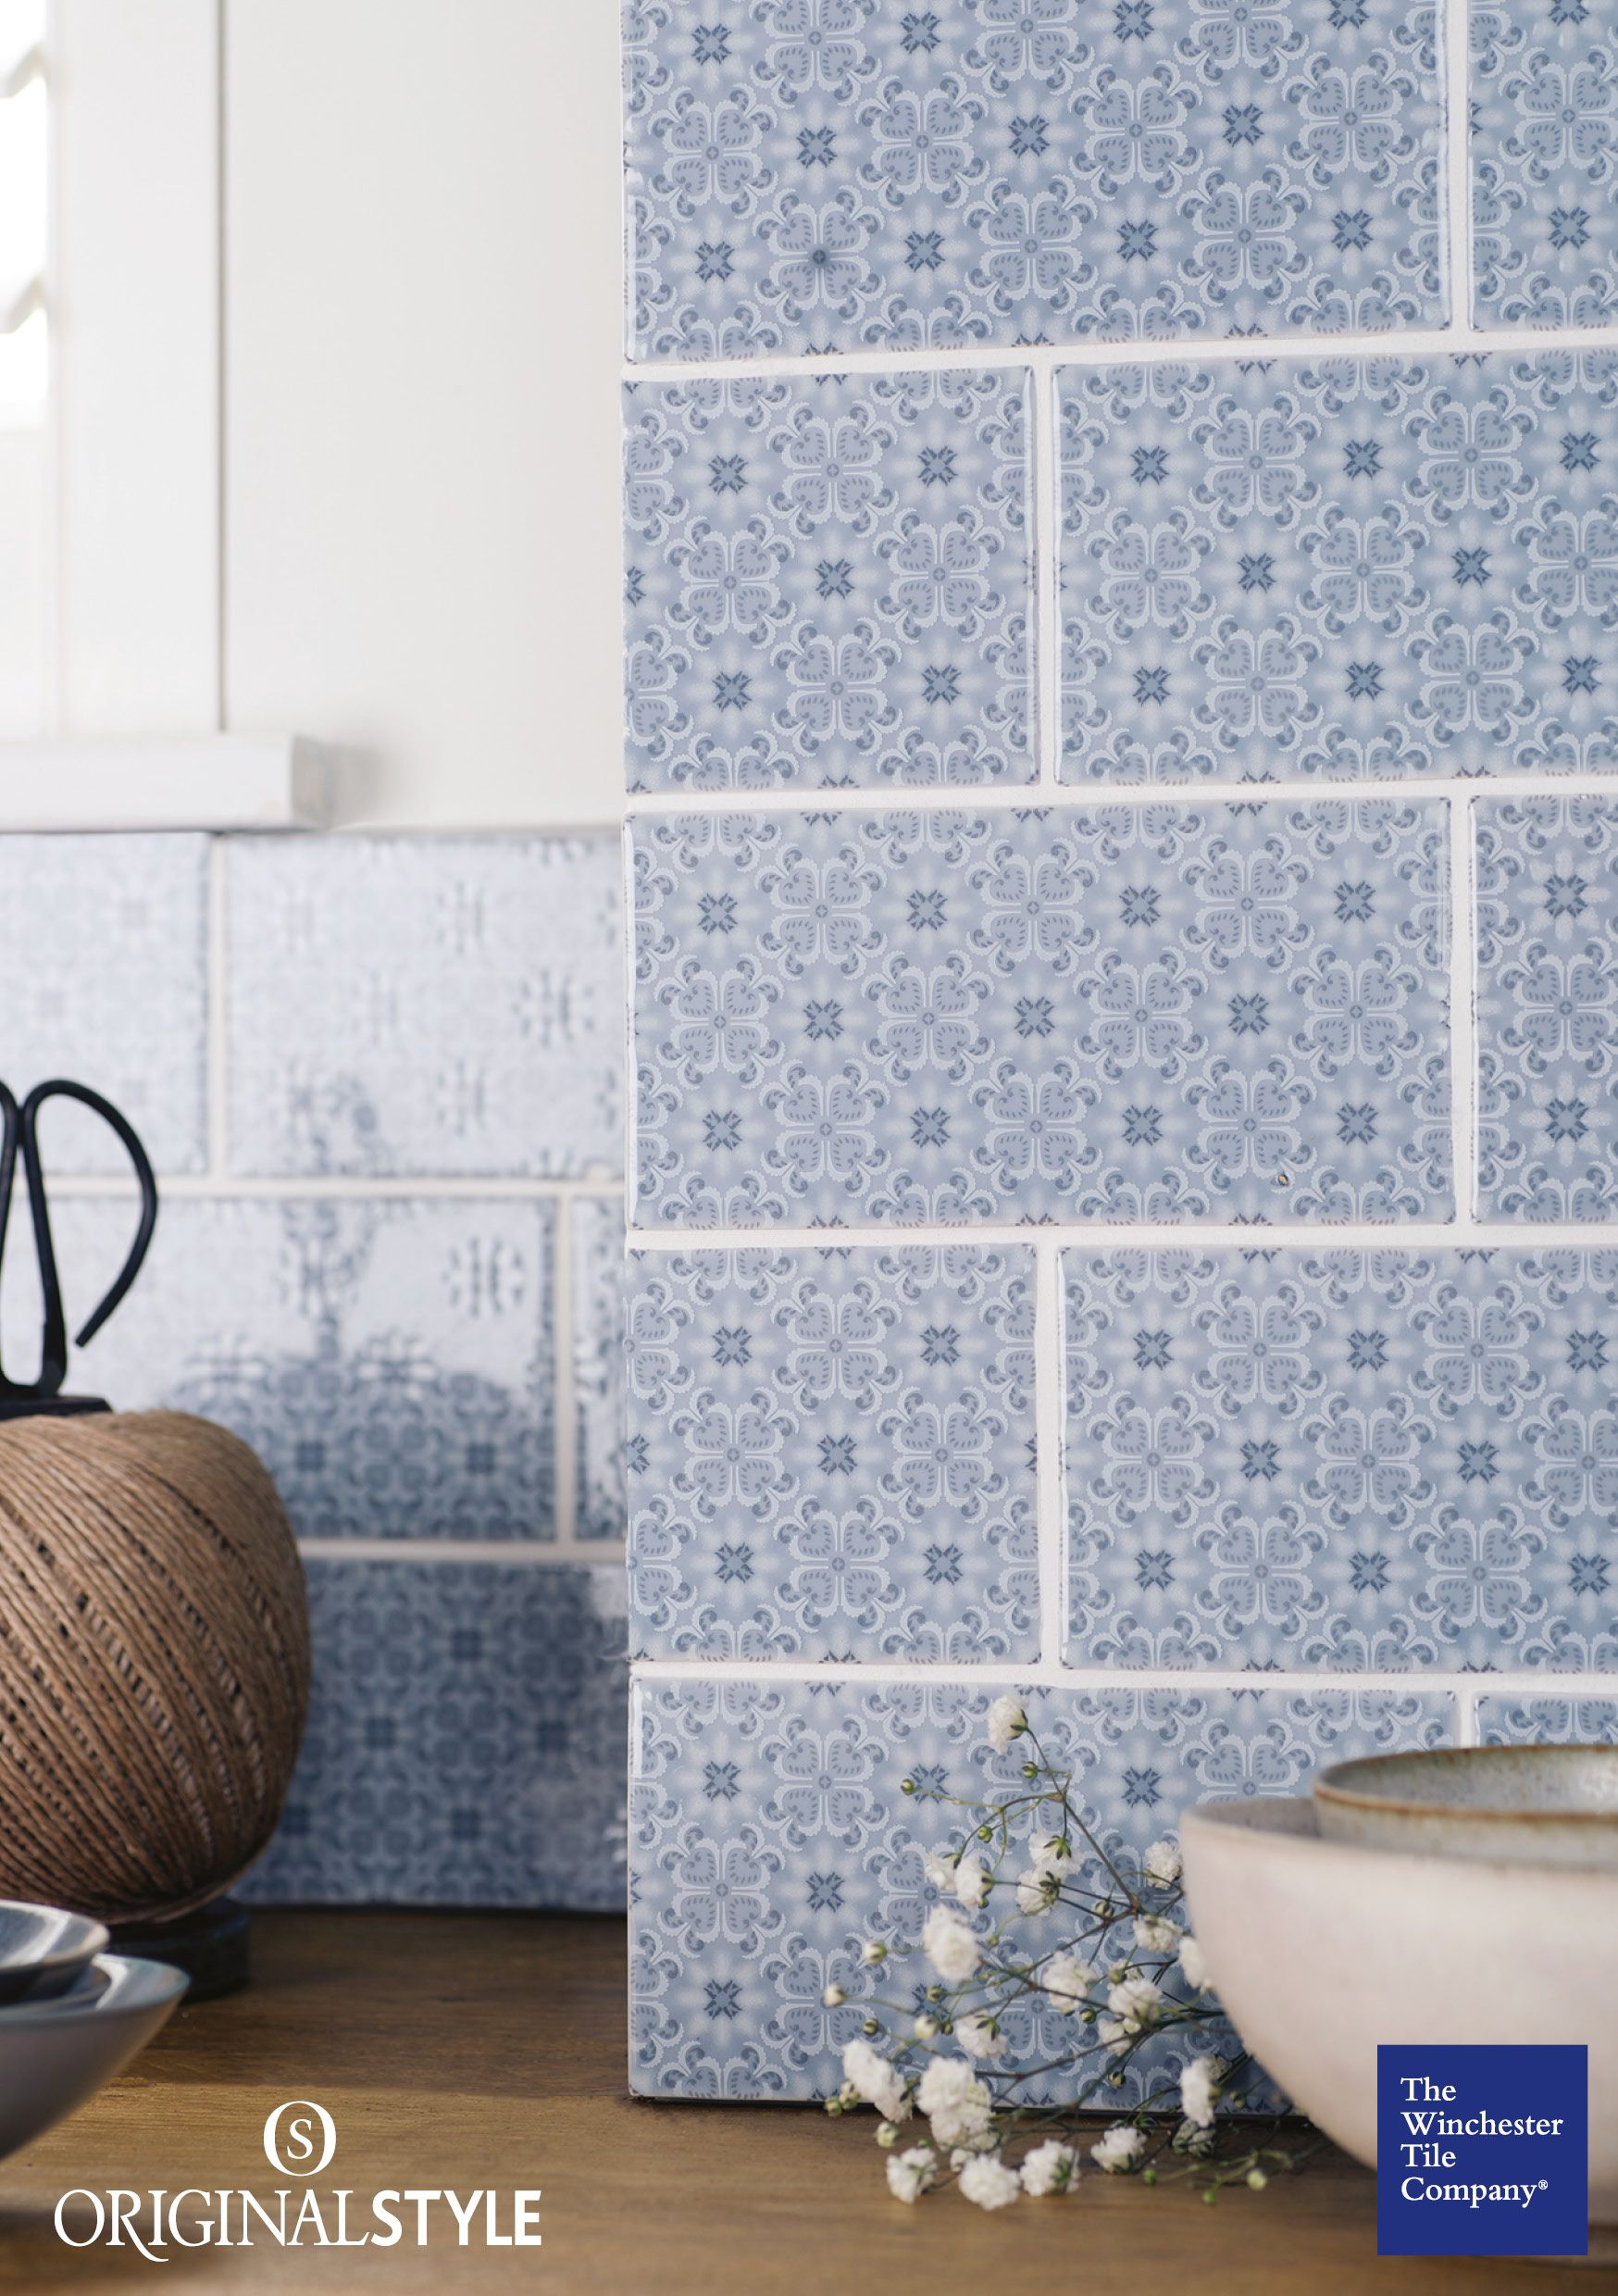 Rosemoor On Snape Ceramic Tile | Brick tiles, Bricks and Kitchens